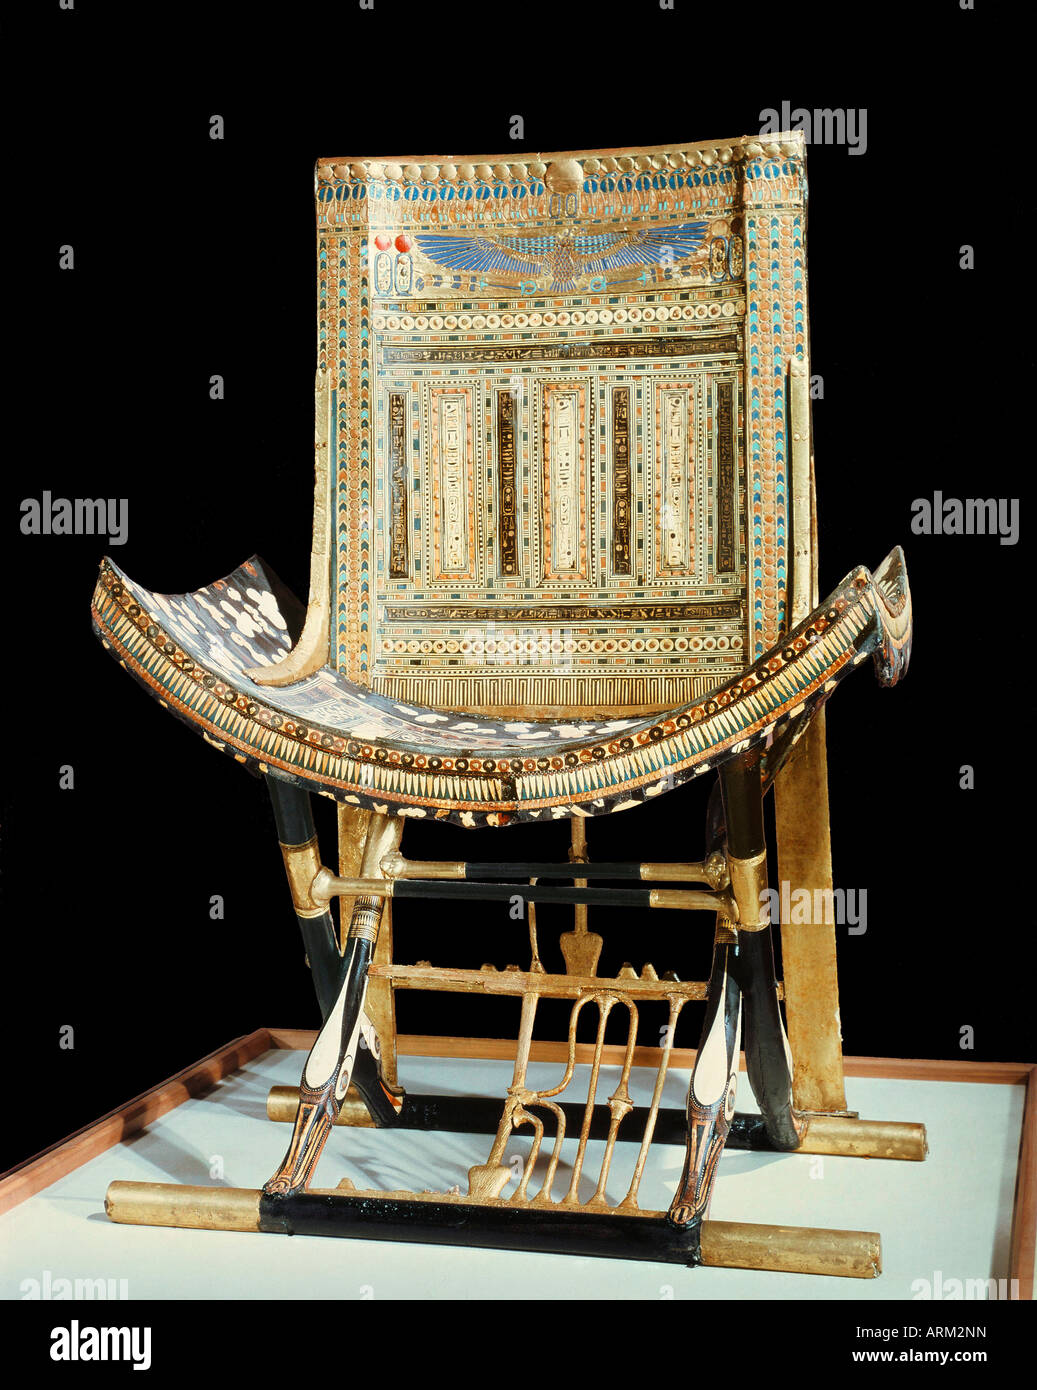 The ecclesiastical throne, from the tomb of the pharaoh Tutankhamun - Stock Image